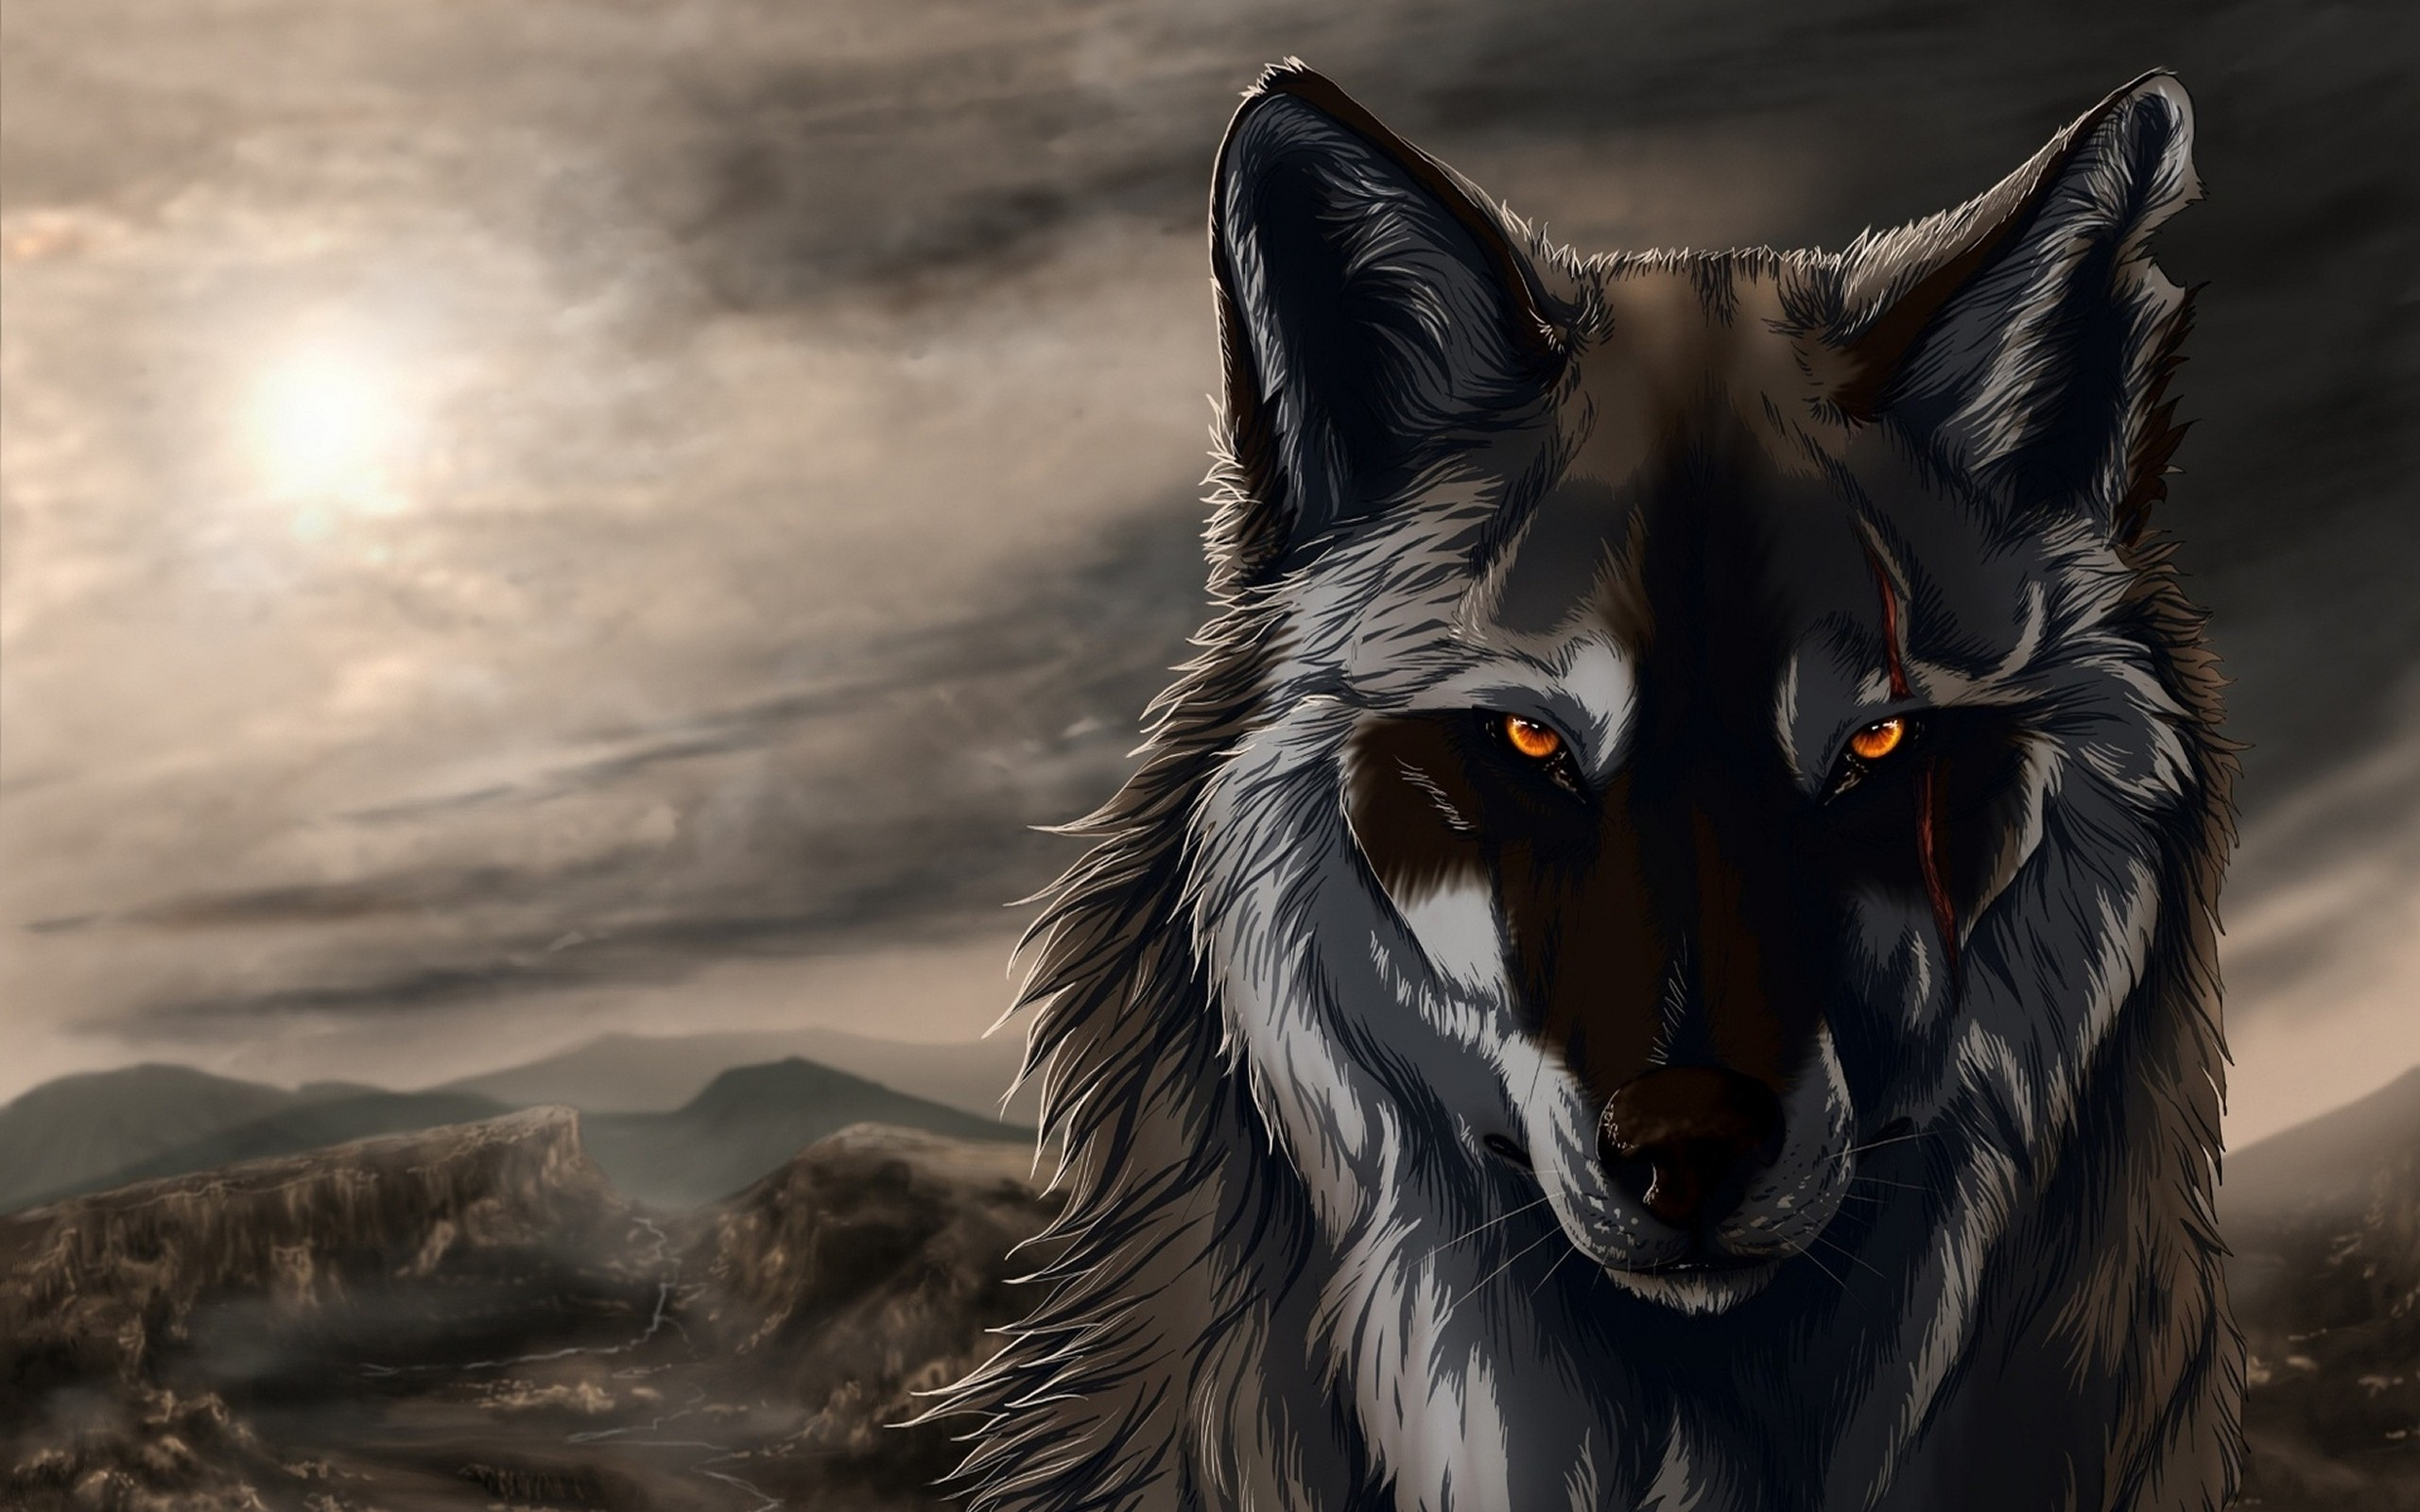 Hd wallpaper wolf - Hd Wallpaper Background Id 318728 2560x1600 Animal Wolf